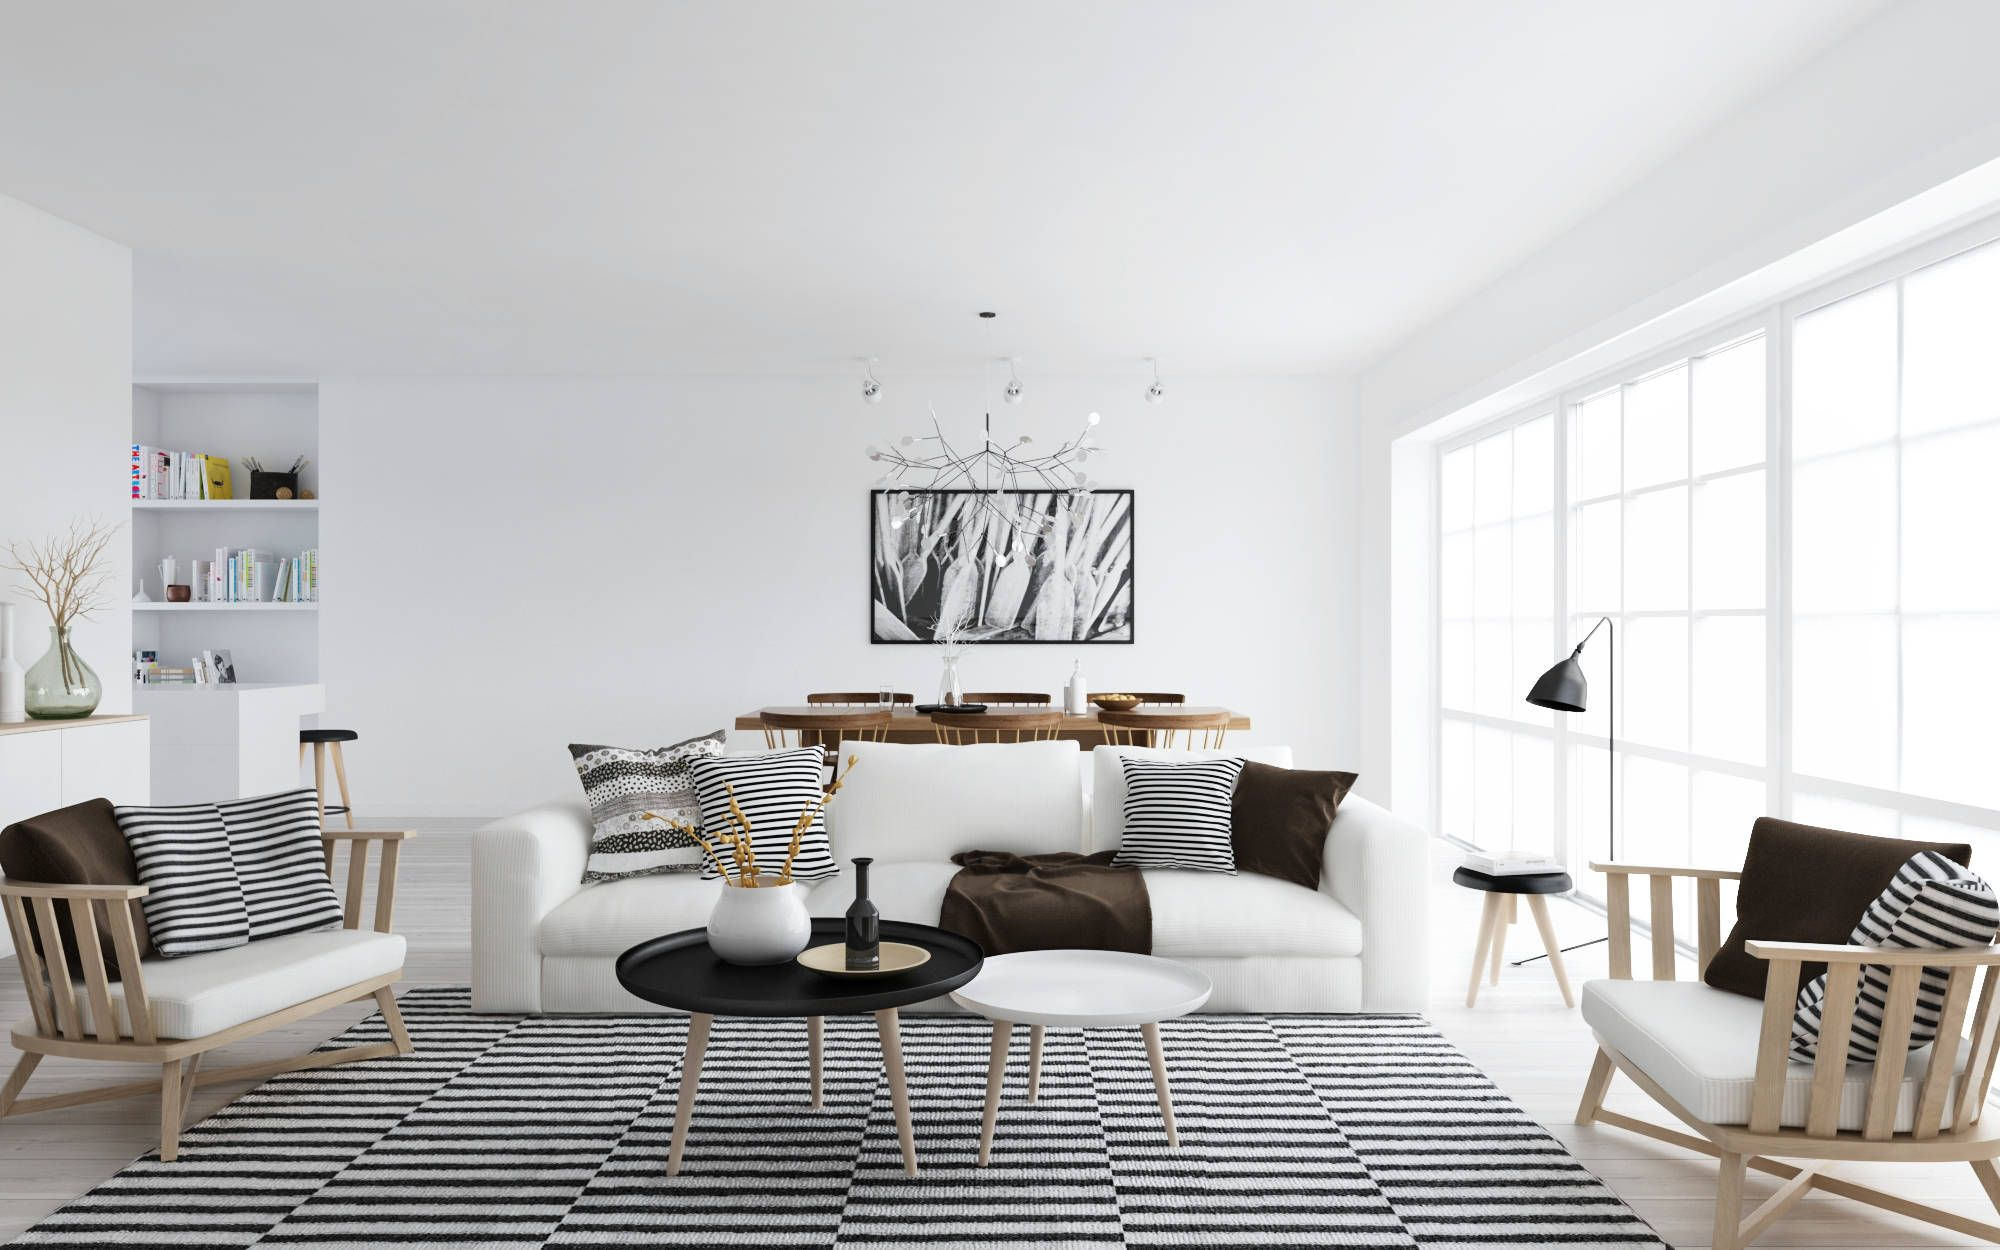 Magnificent Decoration Of Scandinavian Style Interior Design By White Sofa And Striped Cushions Also Wooden Wohnzimmer Design Wohnzimmerdesign Innenarchitektur